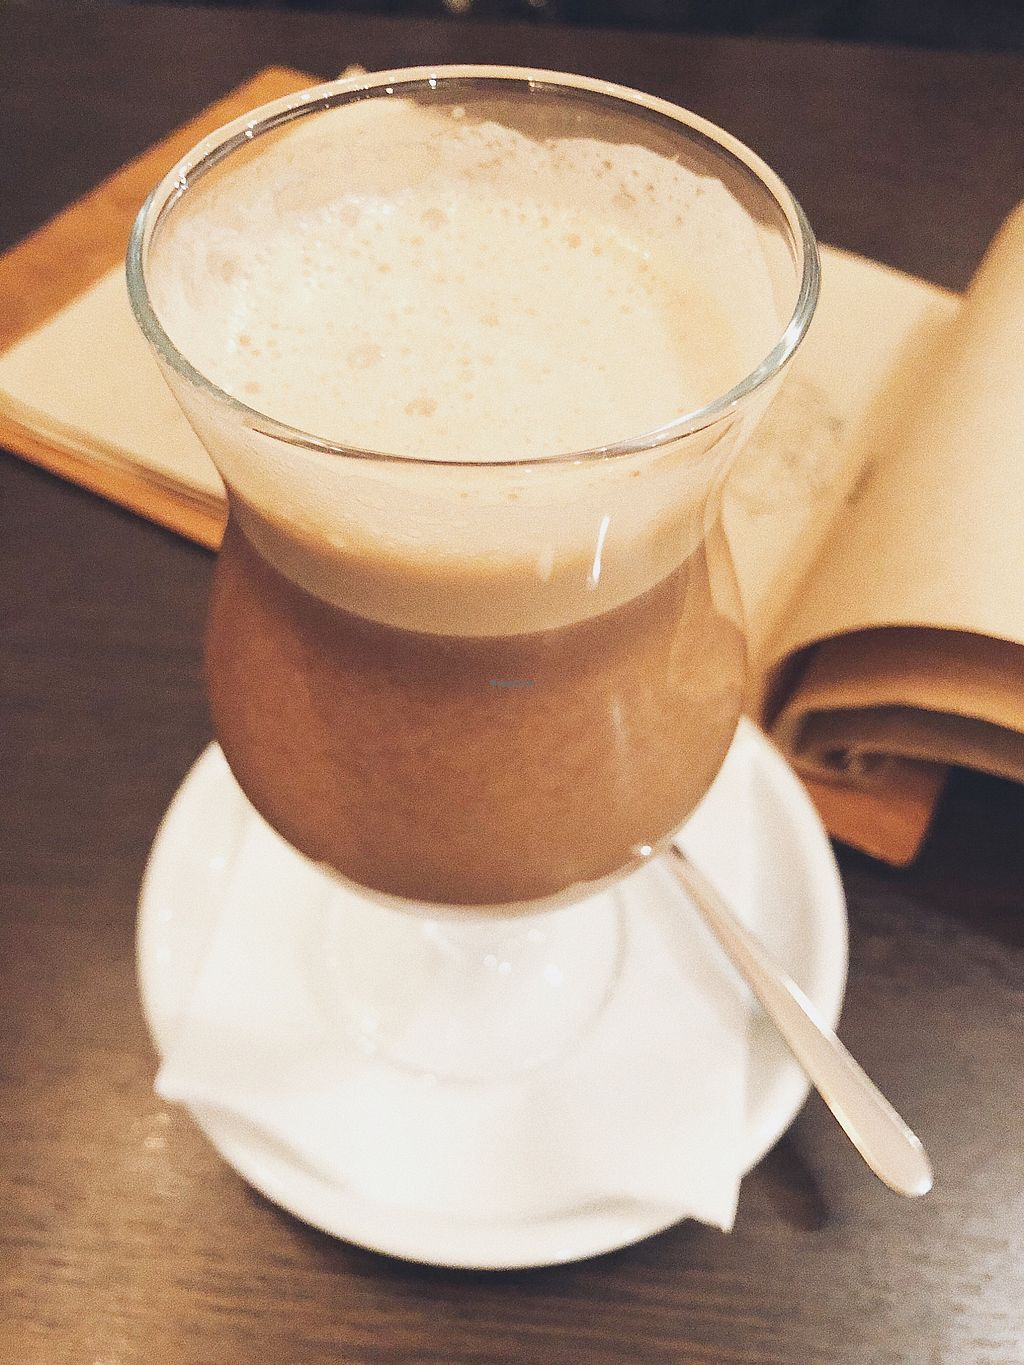 """Photo of Ugol  by <a href=""""/members/profile/Evgenia"""">Evgenia</a> <br/>Cacao with coconut milk <br/> December 14, 2017  - <a href='/contact/abuse/image/86459/335585'>Report</a>"""